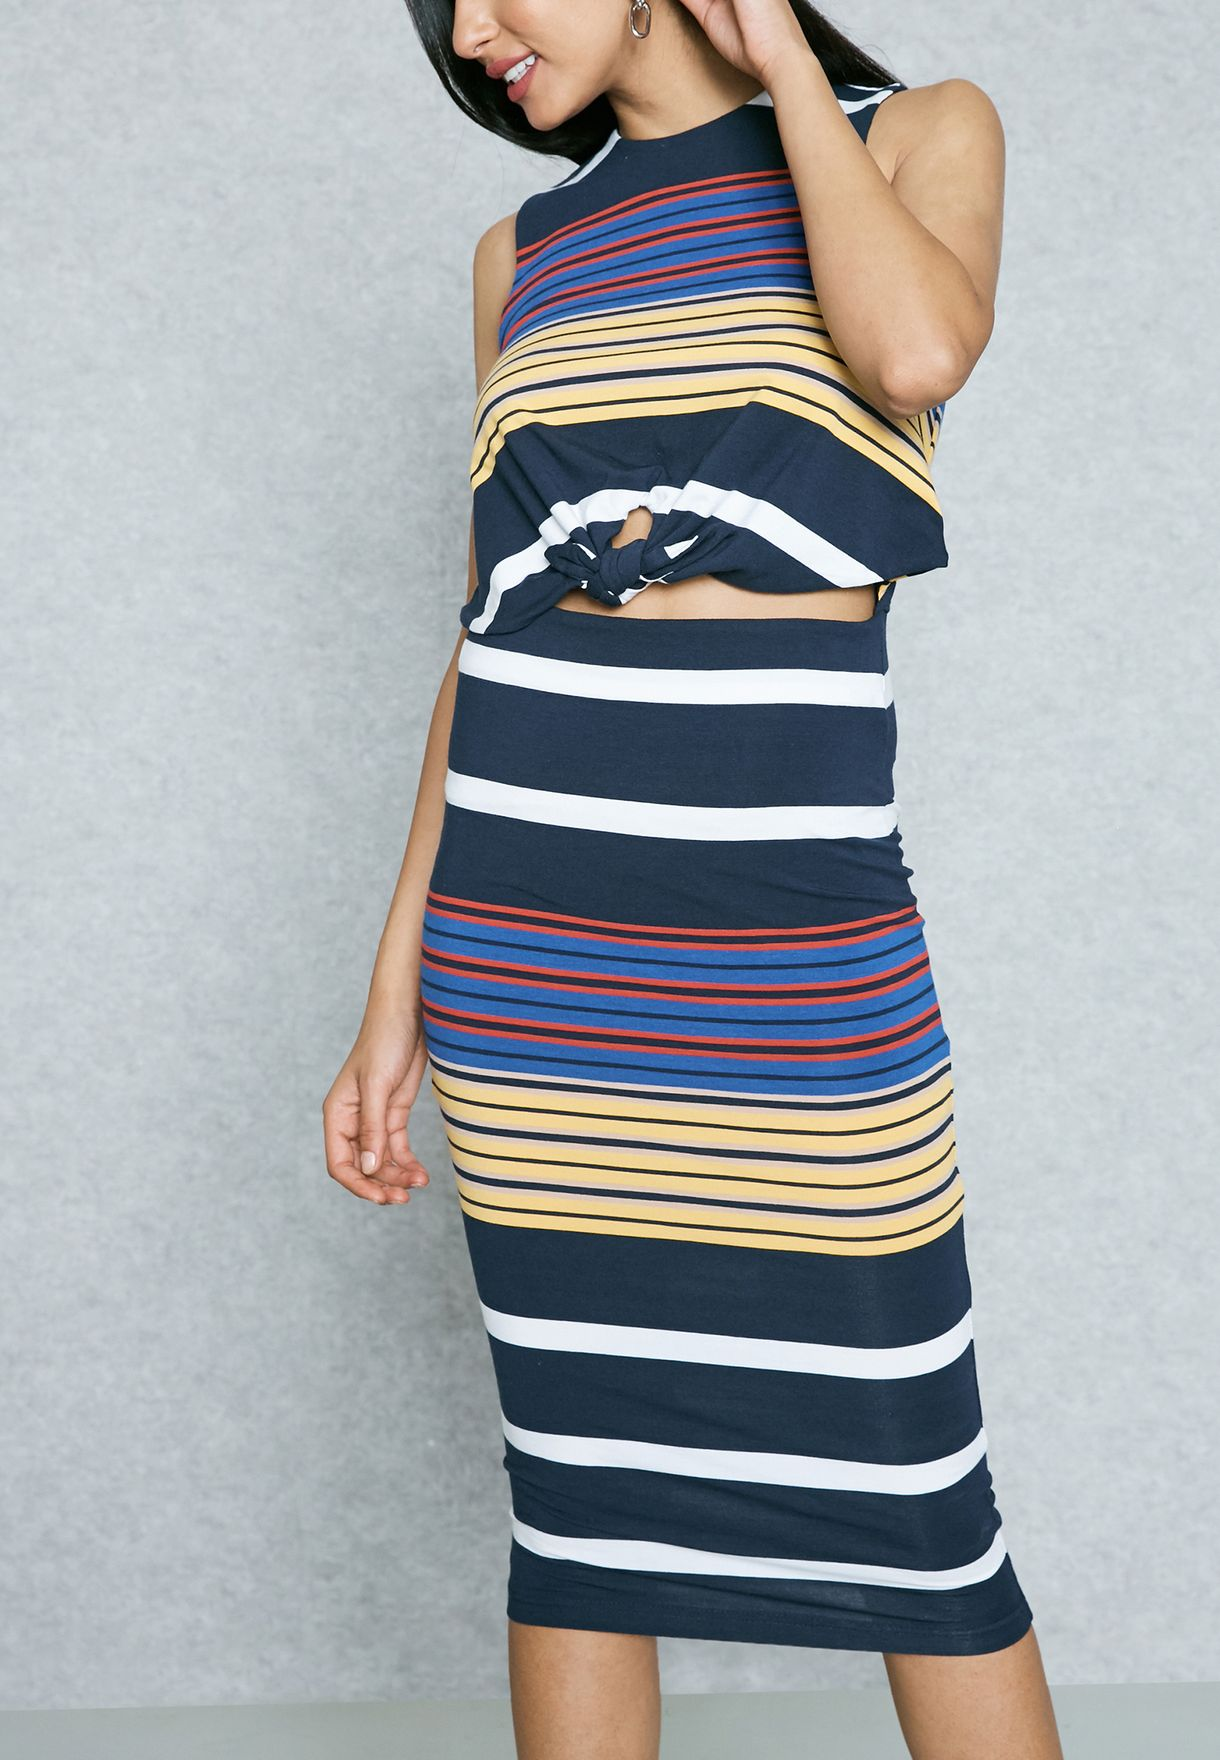 52dced9387ab Shop KENDALL + KYLIE stripes Cut Out Striped Bodycon Dress ...